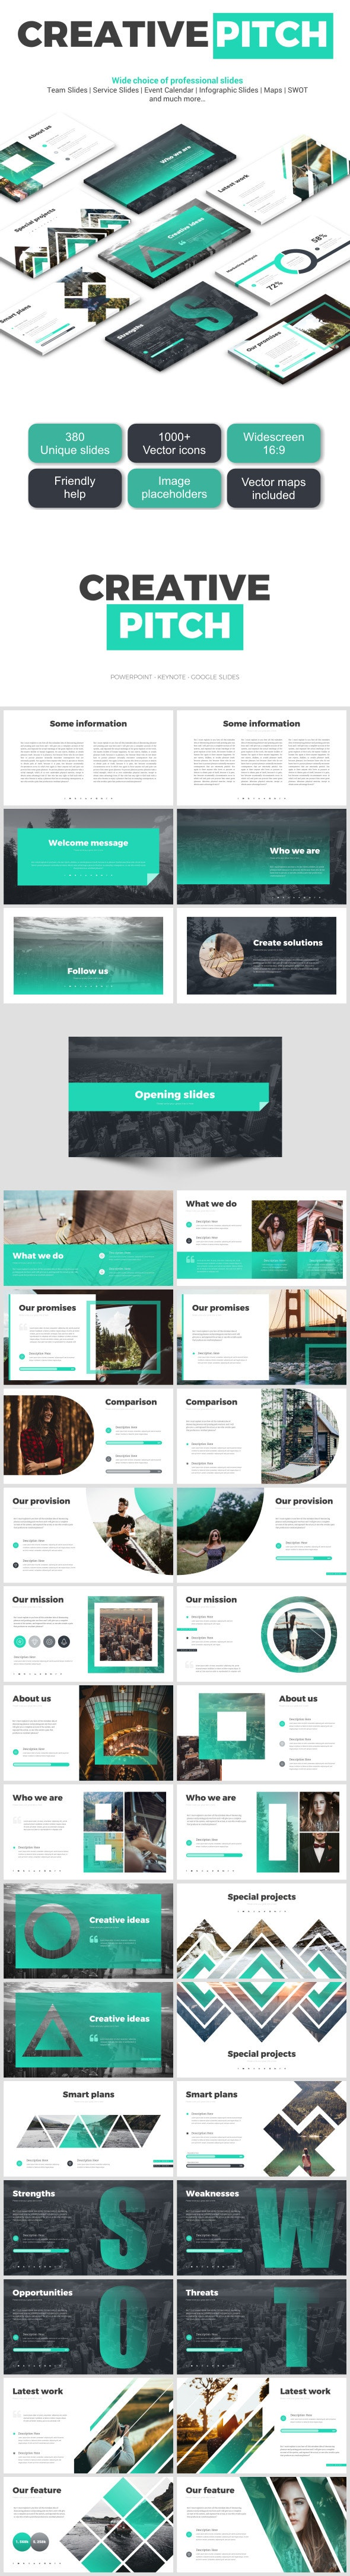 Creative Pitch Deck - Google Slides Presentation Templates